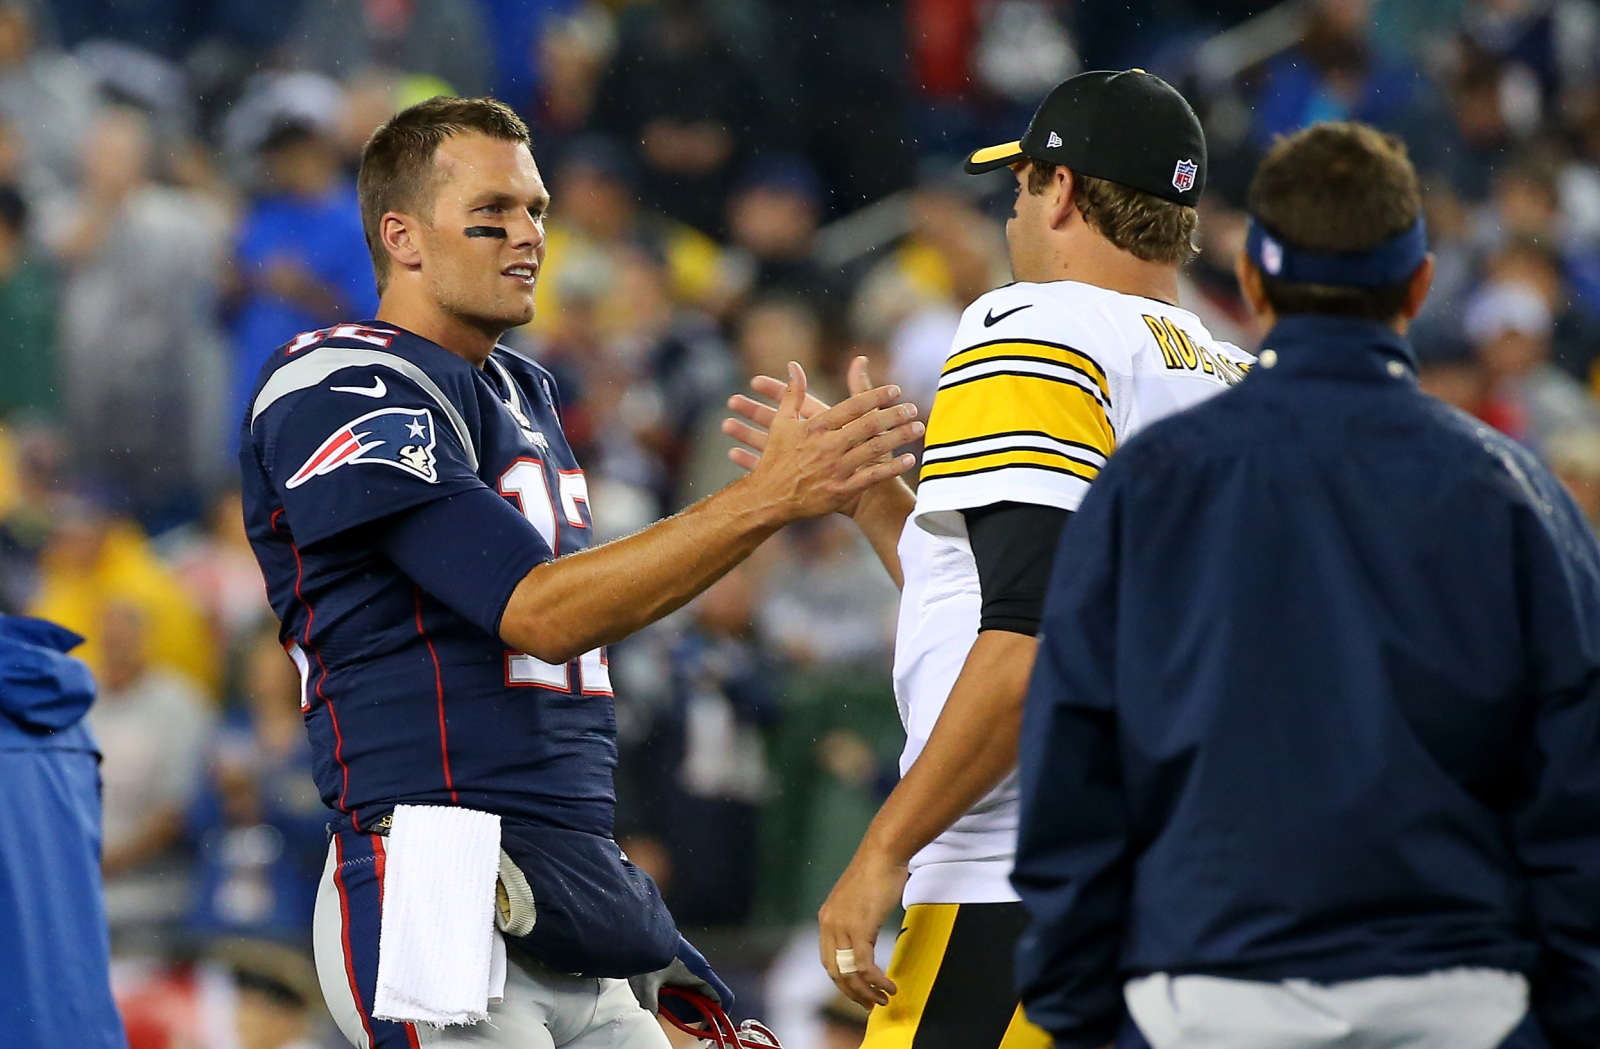 Could Ben Roethlisberger's current deal determine Tom Brady's next deal?